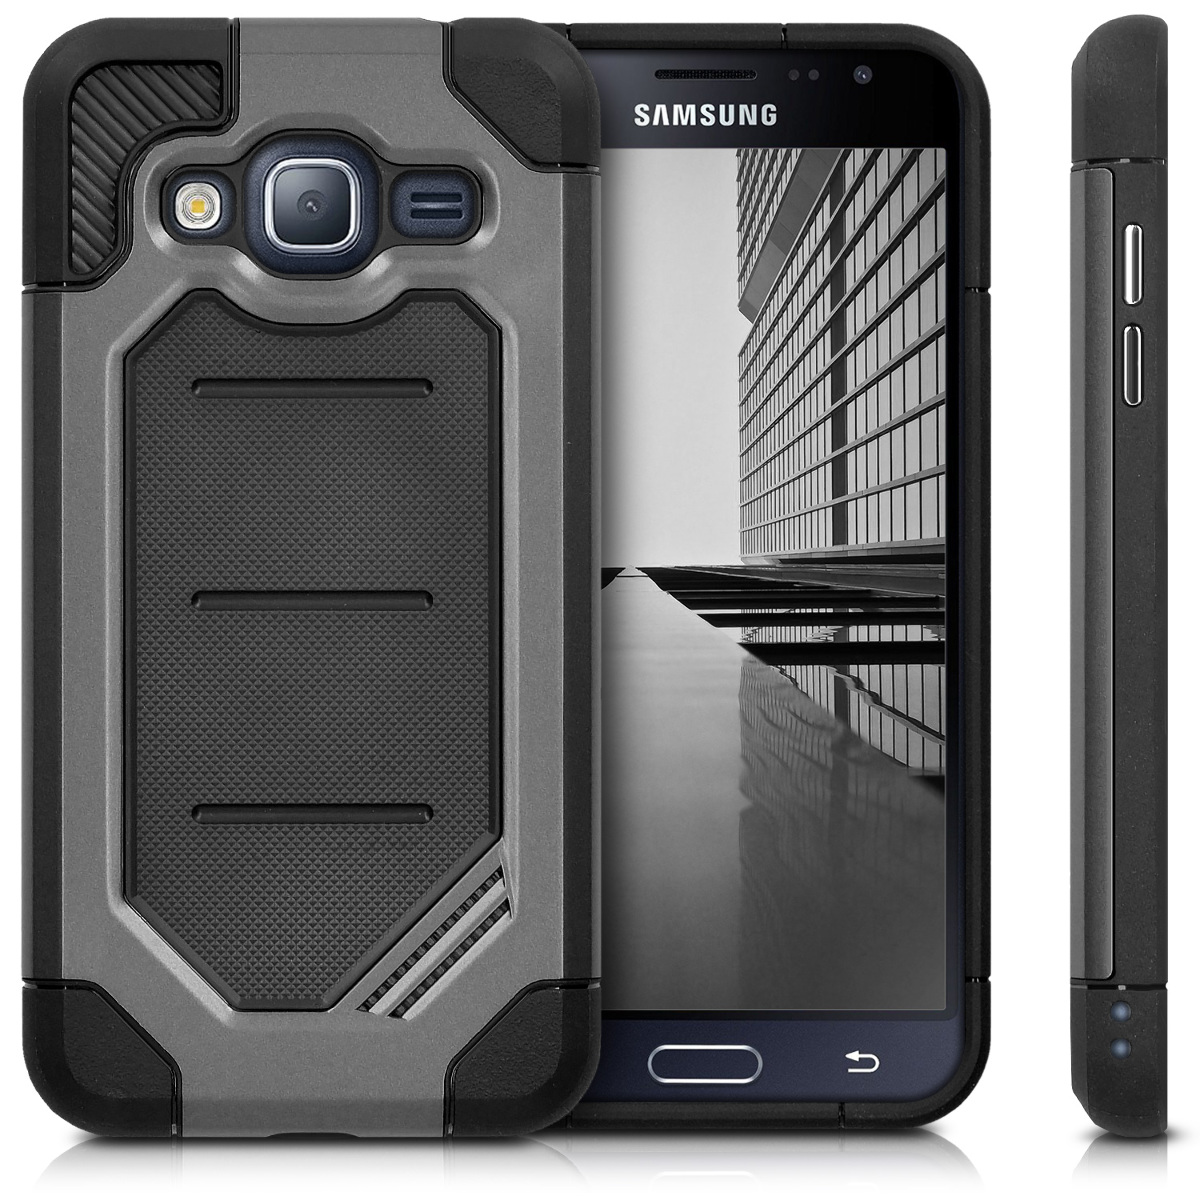 kwmobile-ETUI-DE-PROTECTION-POUR-SAMSUNG-GALAXY-J3-2016-DUOS-HYBRID-CHIC